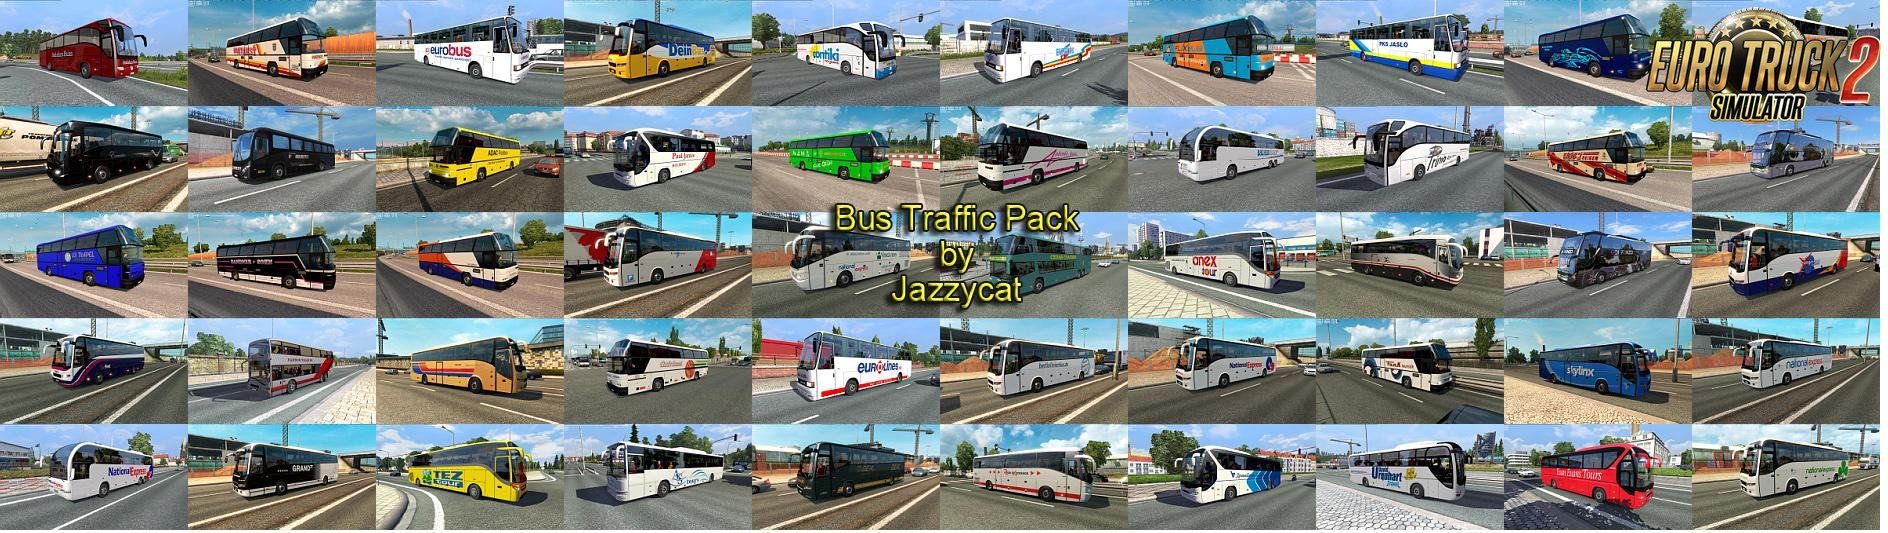 Bus Traffic Pack v1.6 by Jazzycat (1.26.x)